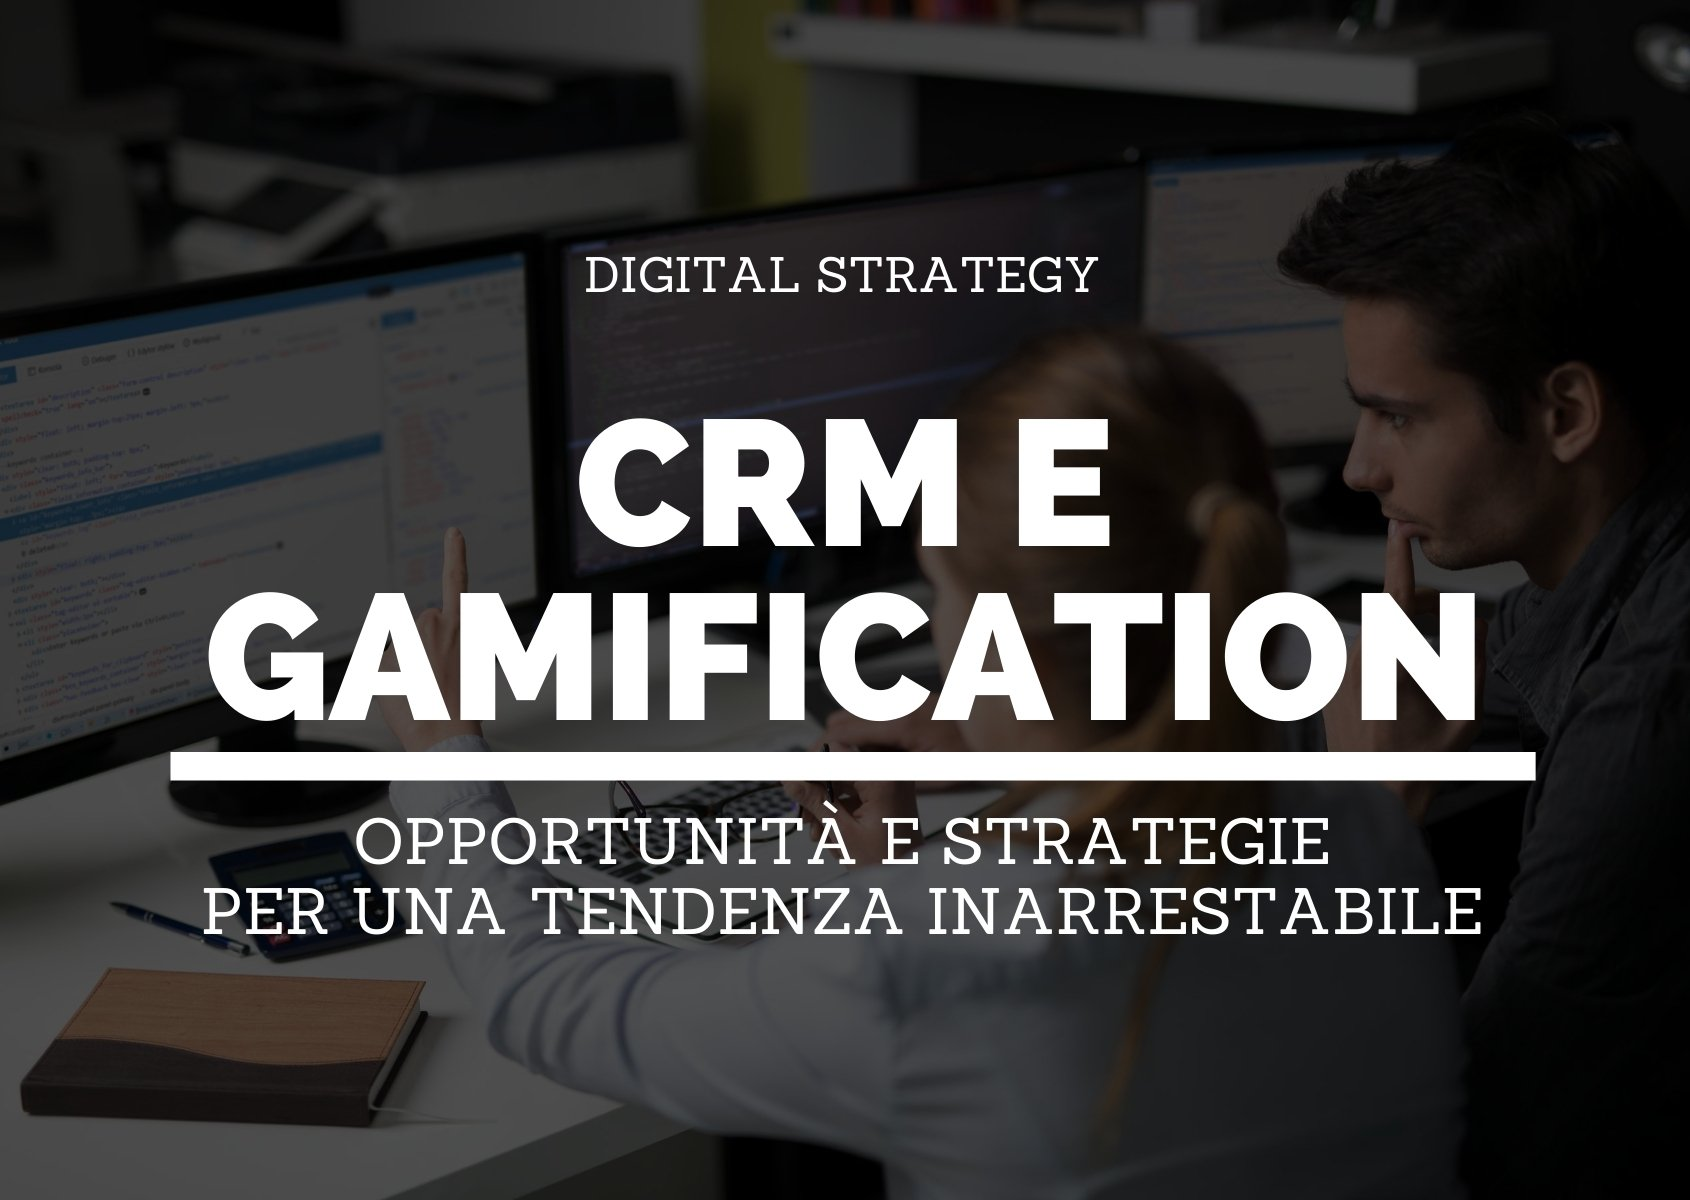 crm-gamification-header